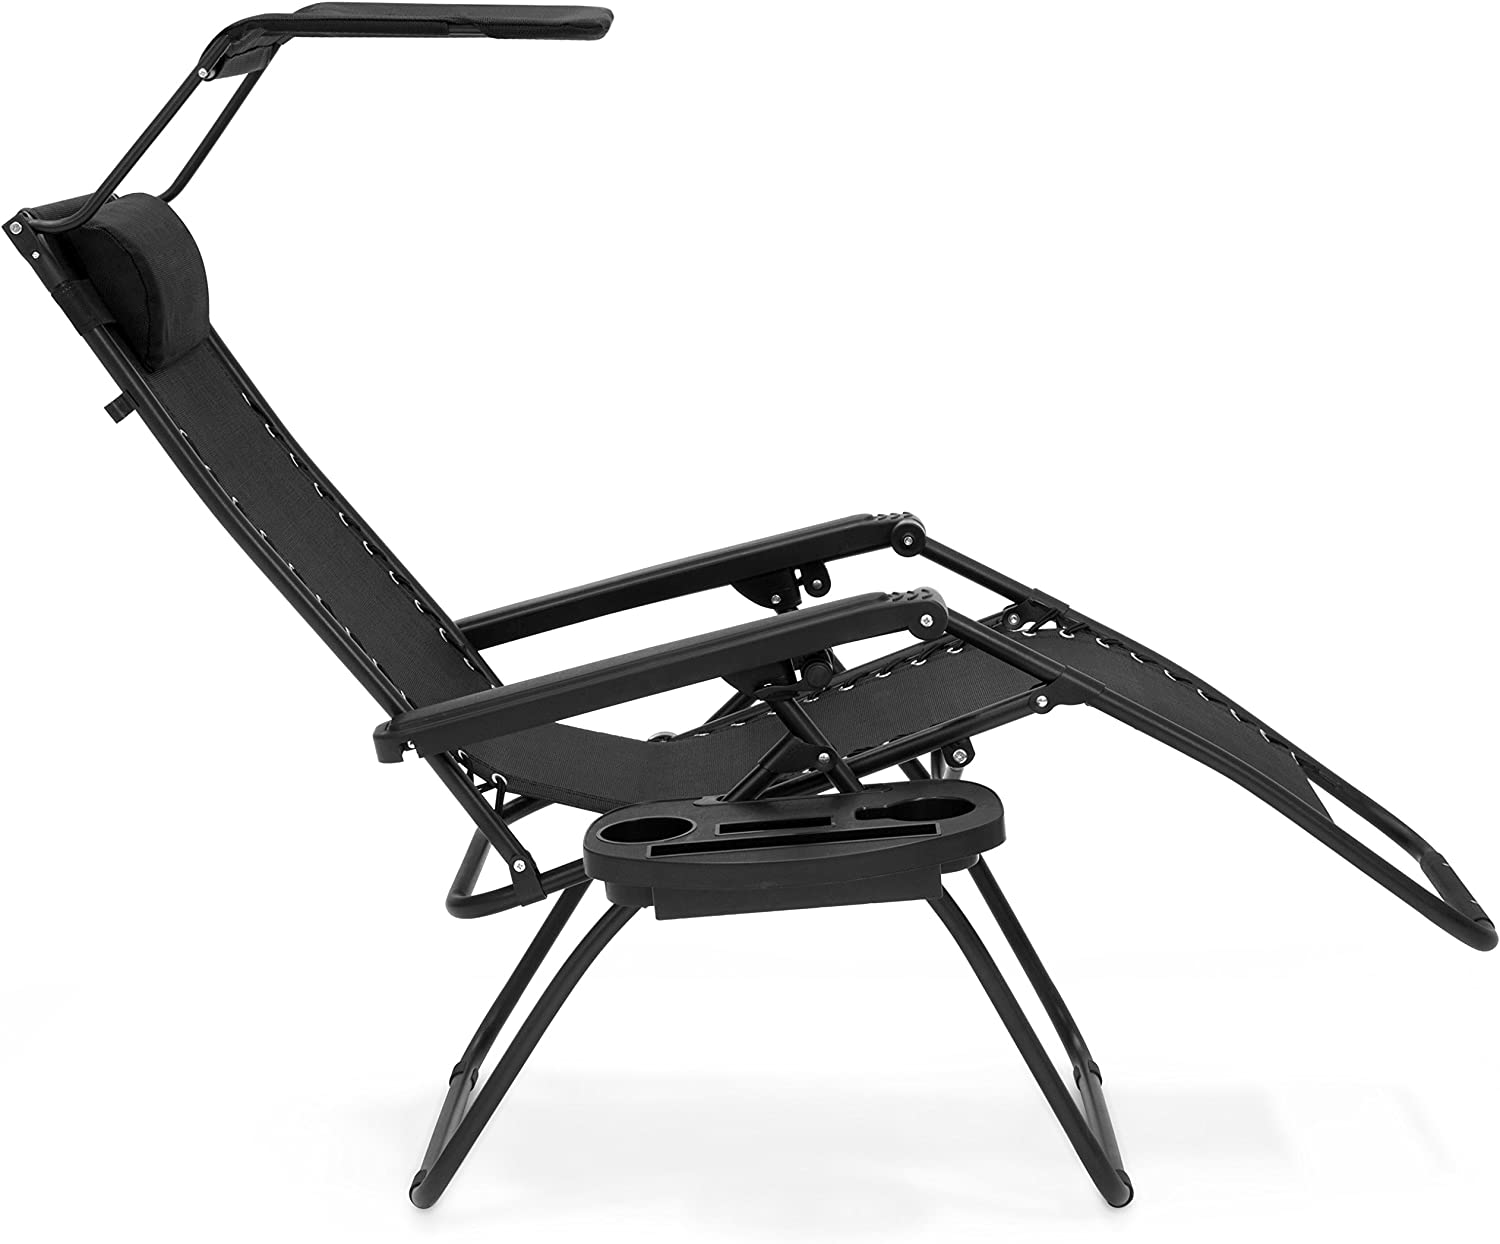 Best Choice Products Zero Gravity Chair with Canopy Sun Shade - Black